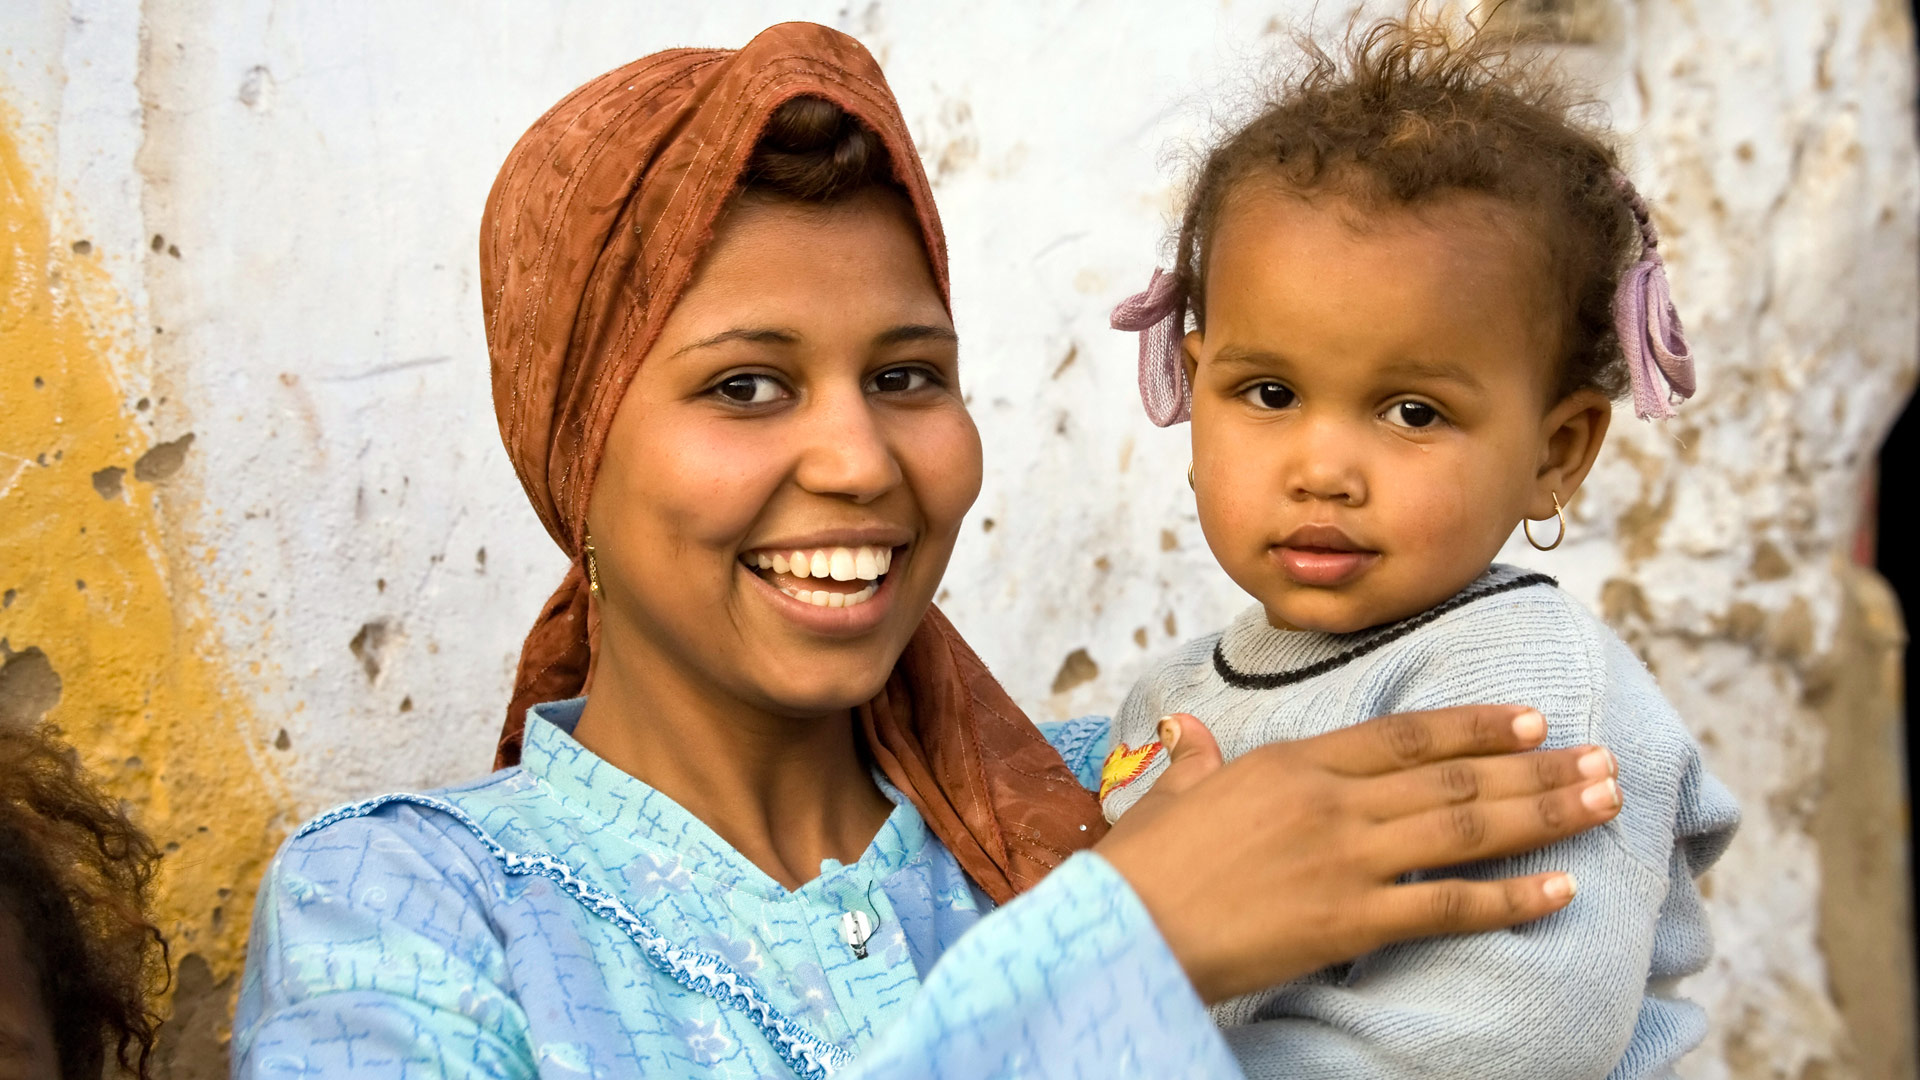 A local mother and child in the Nubian village of Cubania near Aswan, Egypt